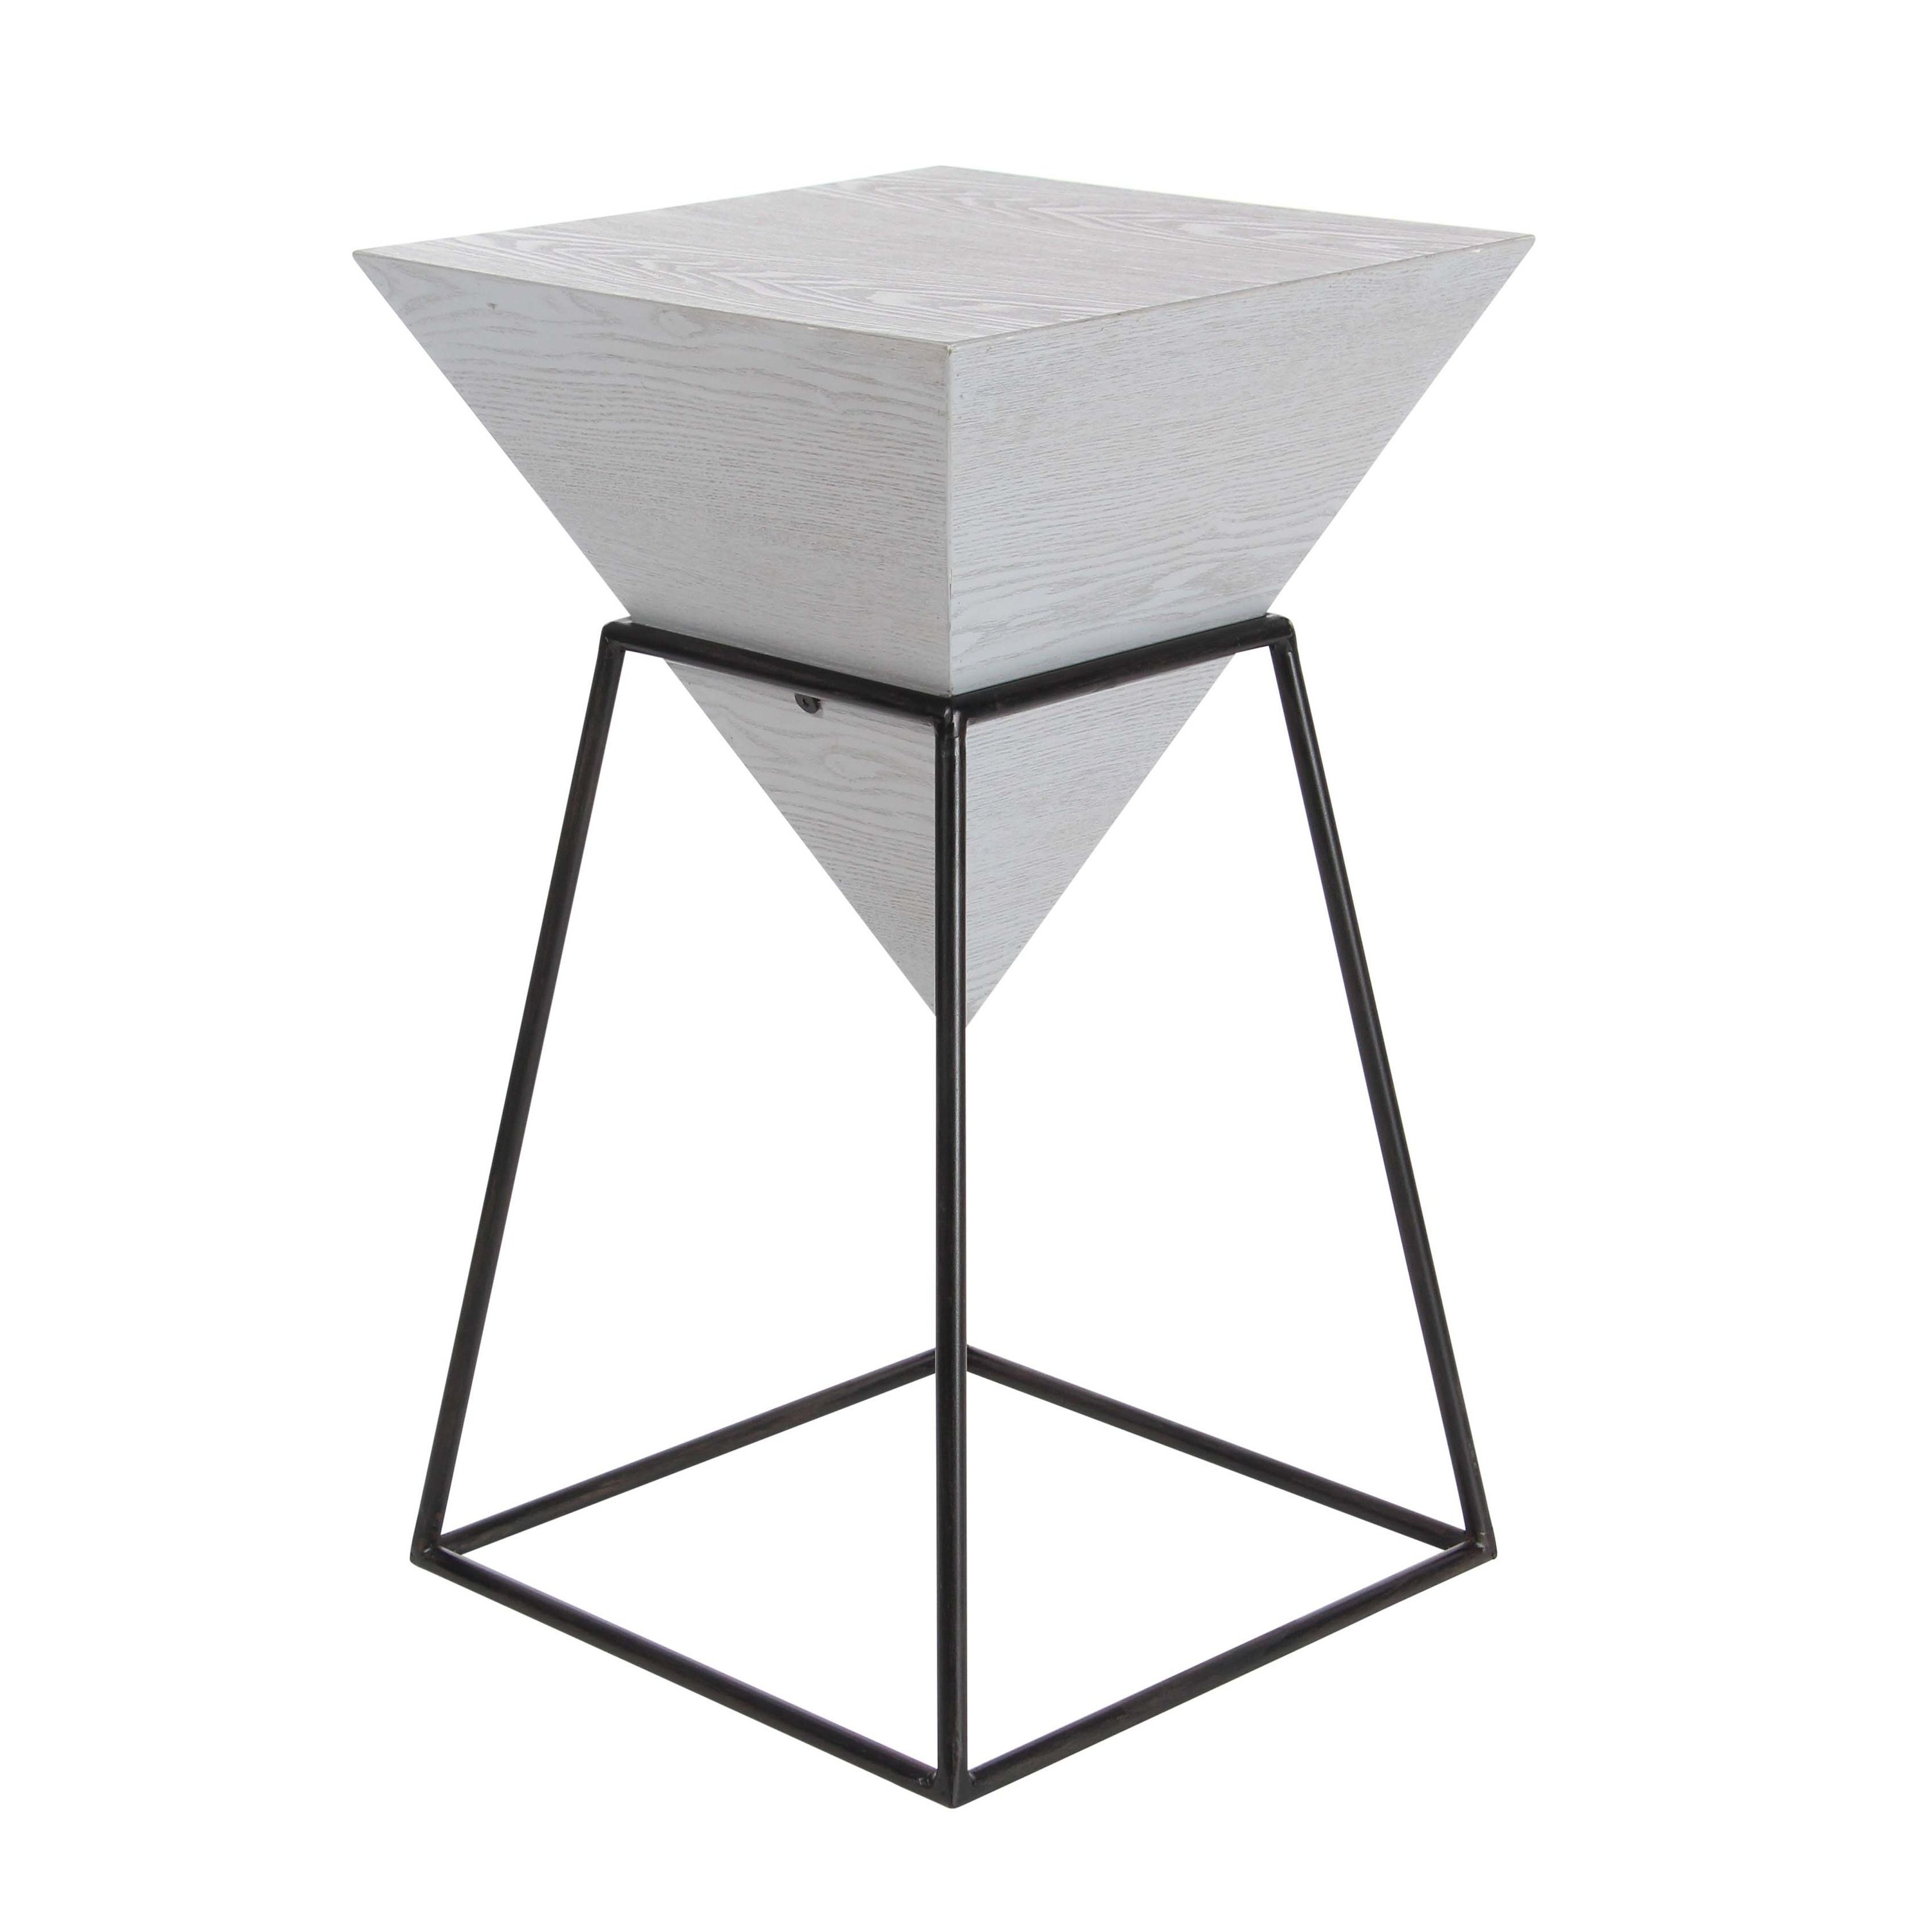 modern inch gray wood and iron accent table studio free shipping today farmhouse style dining room white bedside cabinets kitchen decor items antique marble end tables long